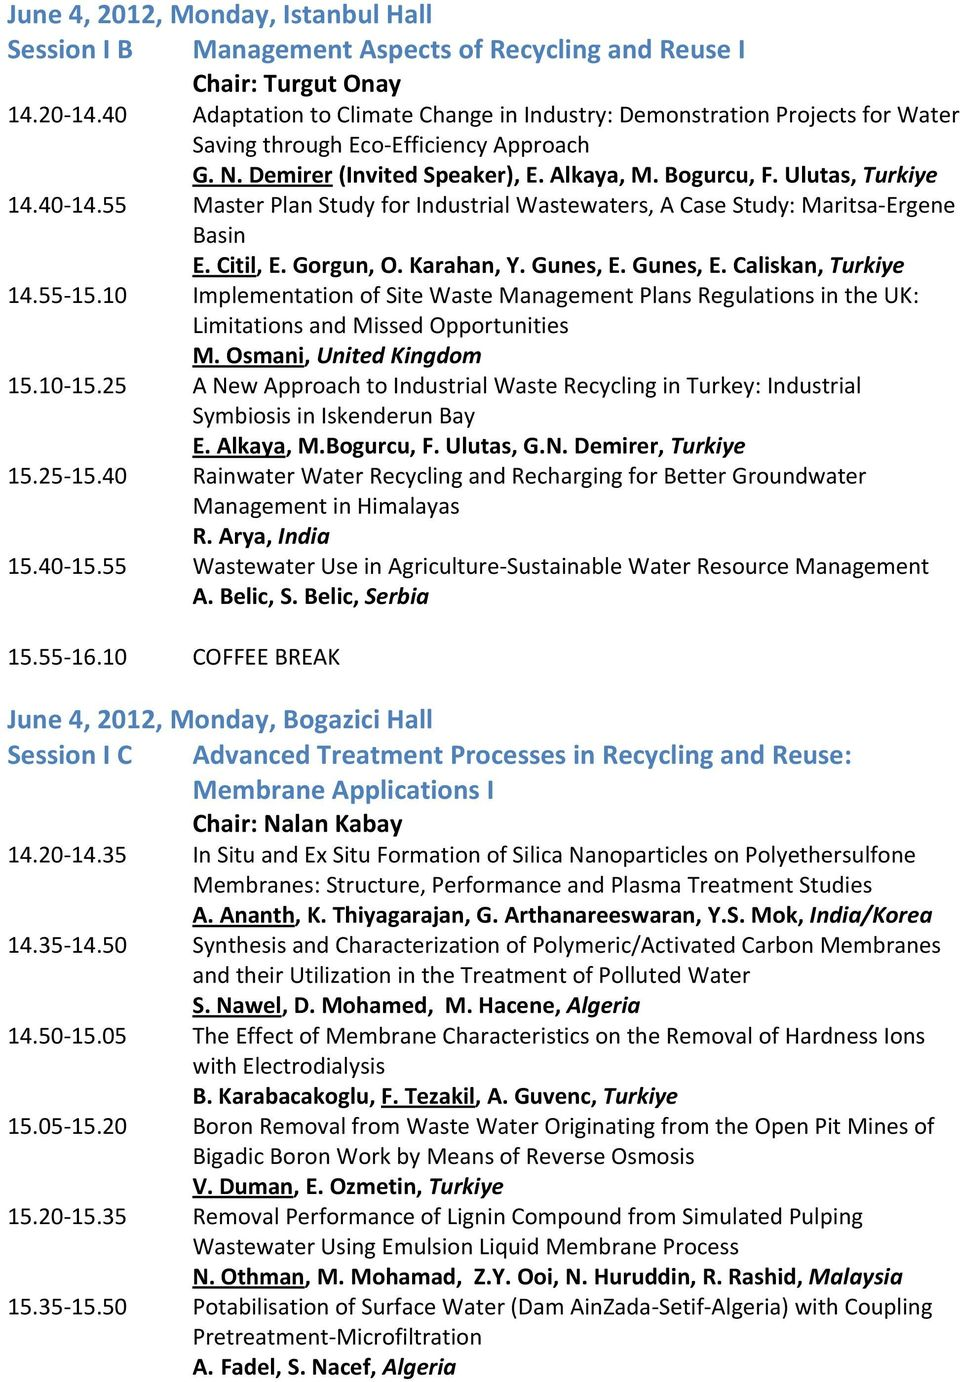 40 14.55 Master Plan Study for Industrial Wastewaters, A Case Study: Maritsa Ergene Basin E. Citil, E. Gorgun, O. Karahan, Y. Gunes, E. Gunes, E. Caliskan, Turkiye 14.55 15.